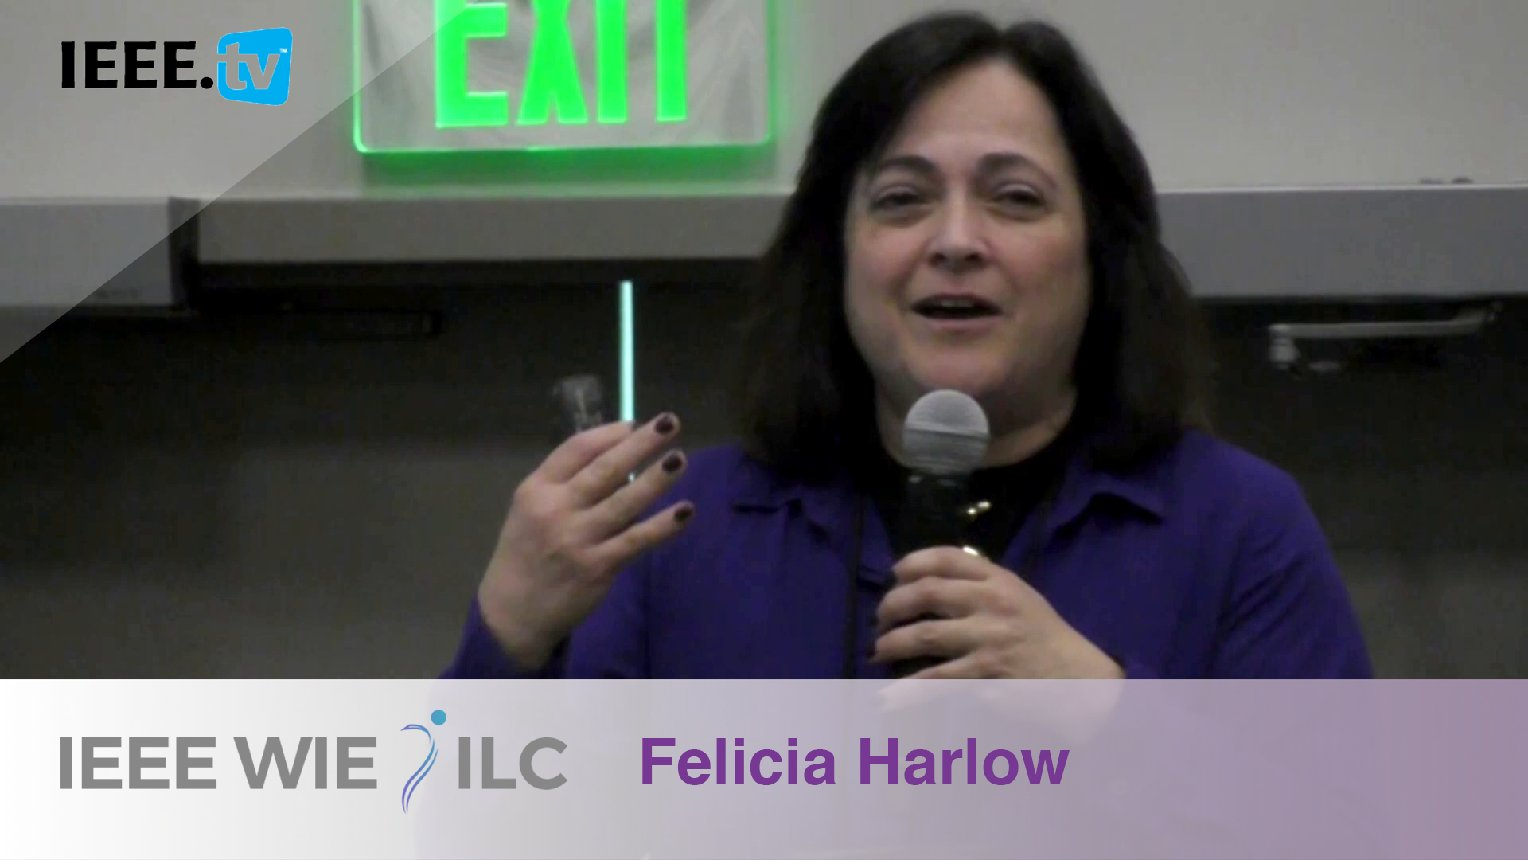 Felicia Harlow: Inspiring WIE Member of the Year Honorable Mention - IEEE WIE ILC Awards 2017